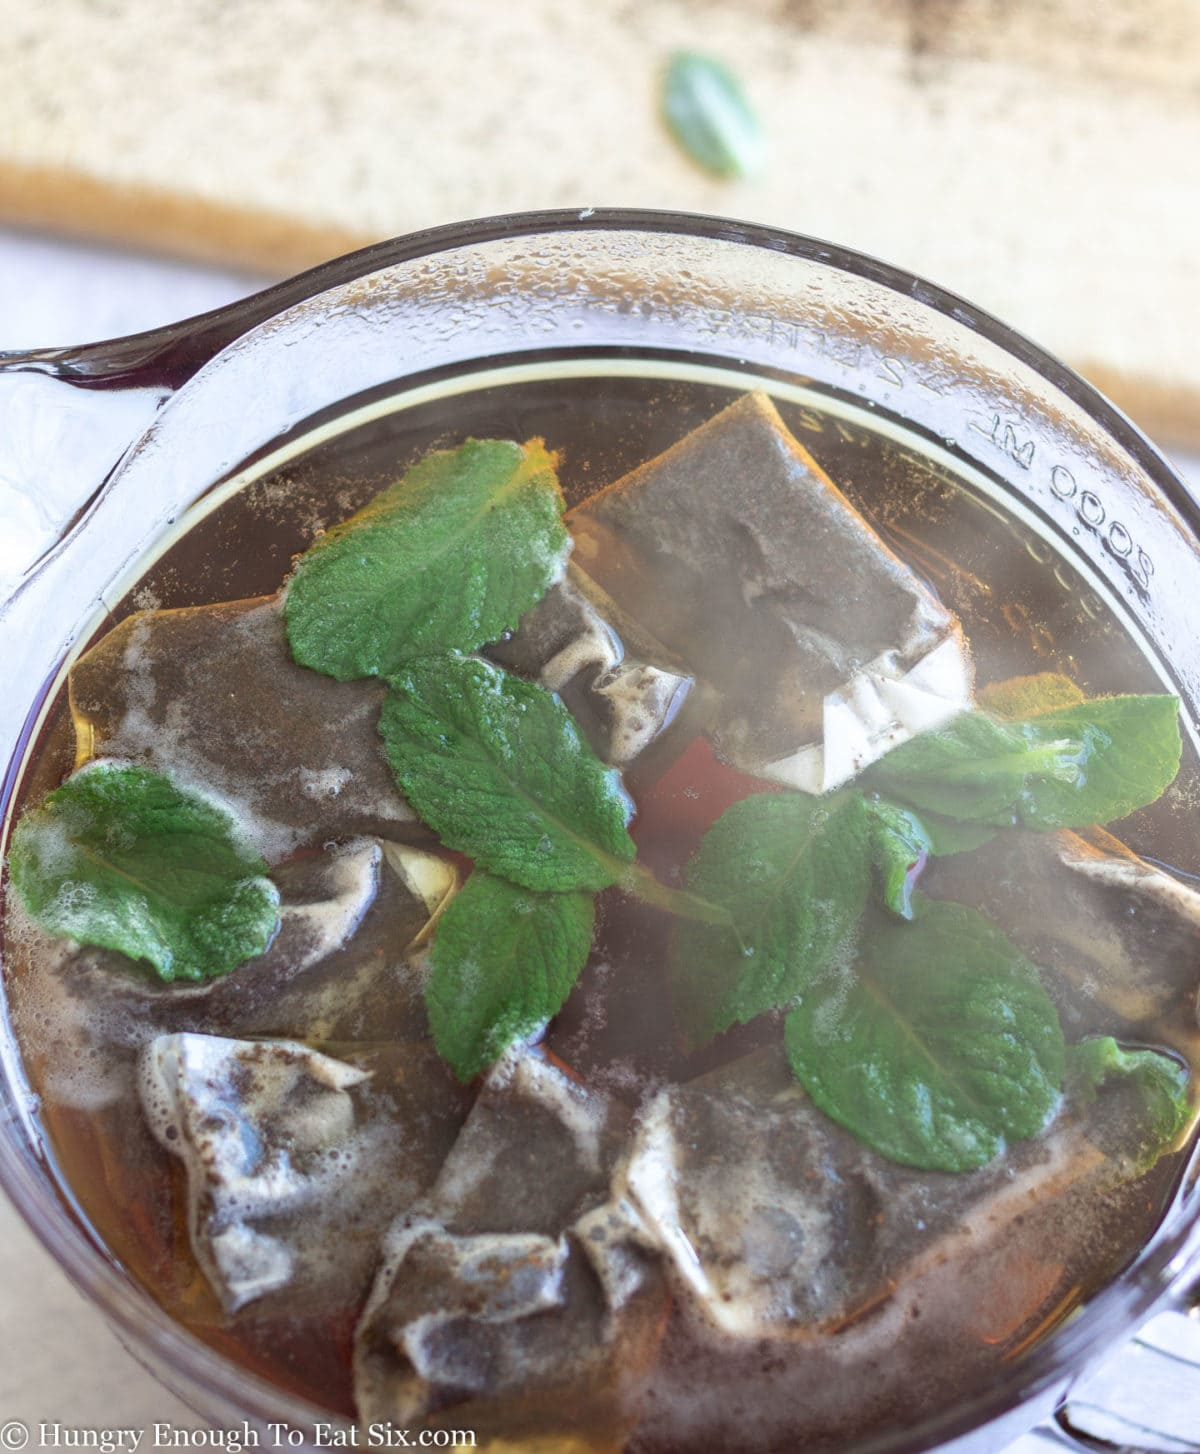 Several tea bags and mint leaves steeping in a Pyrex bowl of boiling hot water.